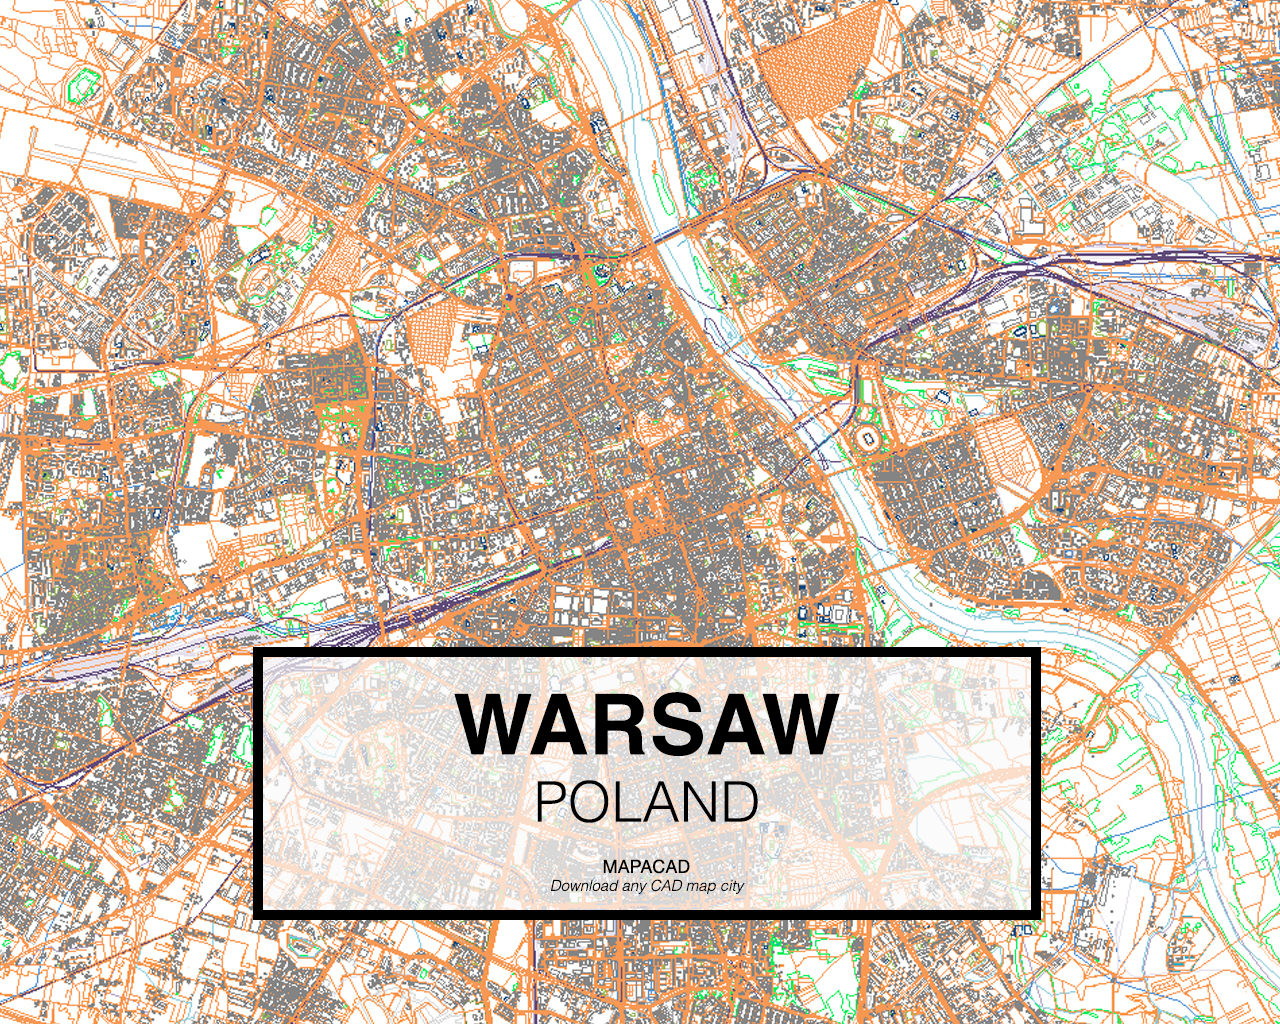 Warsaw dwg mapacad warsaw poland 01 mapacad download map cad dwg gumiabroncs Gallery